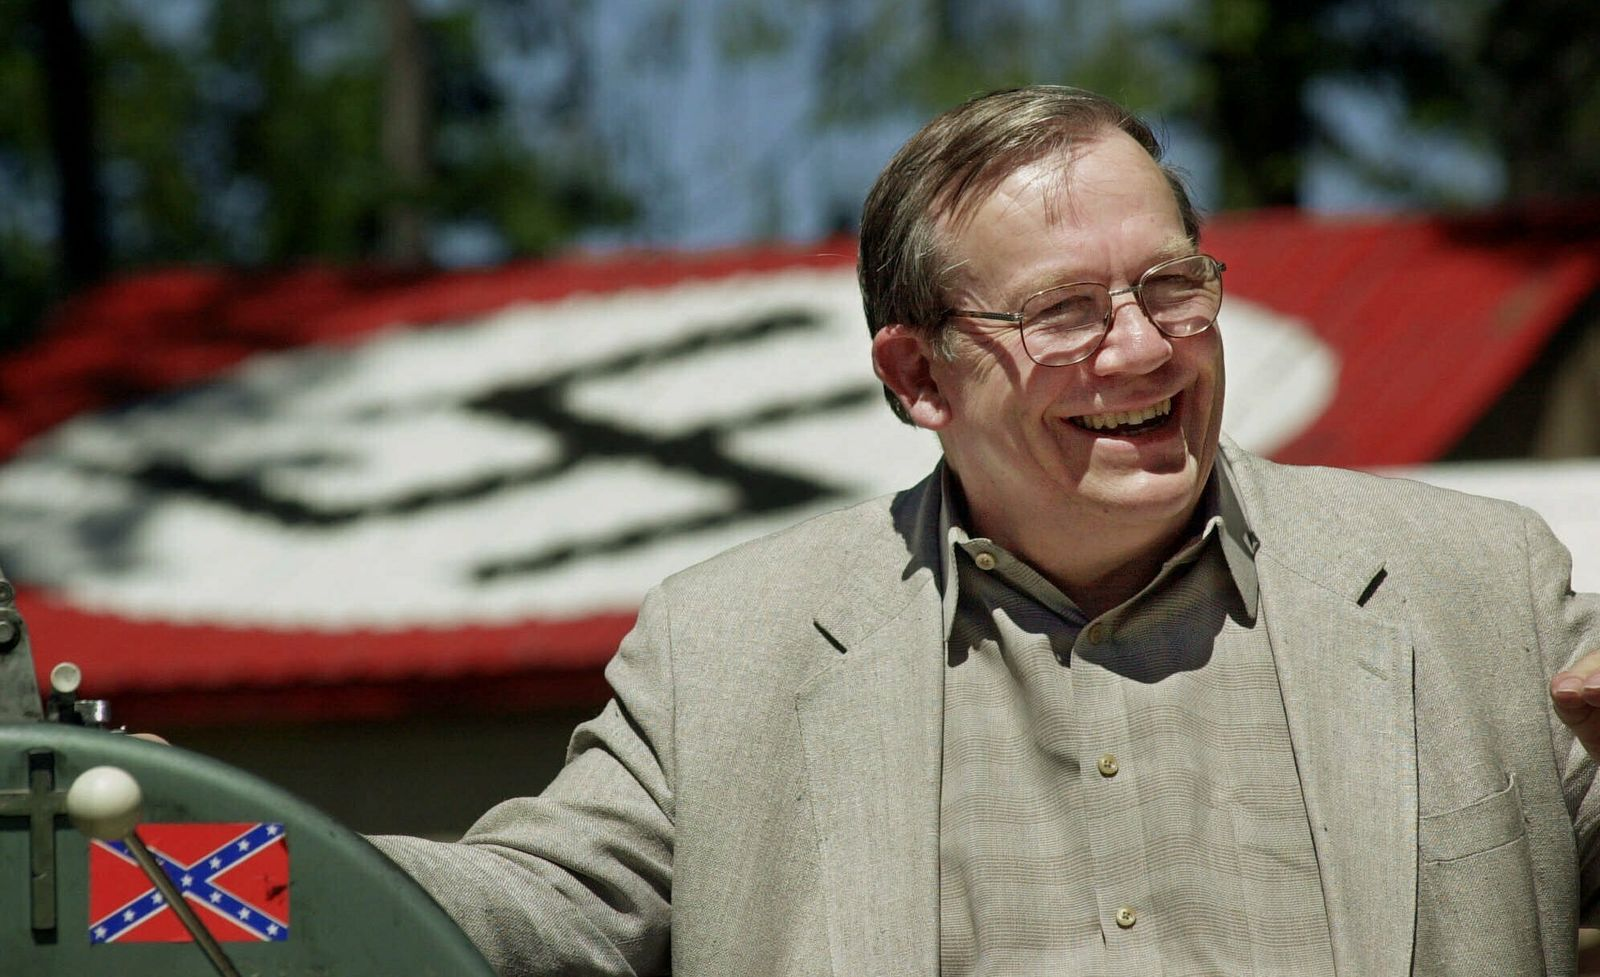 FILE - In this May 22, 2001, file photo, Norm Gissel smiles as he talks about the imminent dismantling of the former headquarters of the Aryan Nations in Hayden Lake, Idaho. (AP Photo/Elaine Thompson, File)